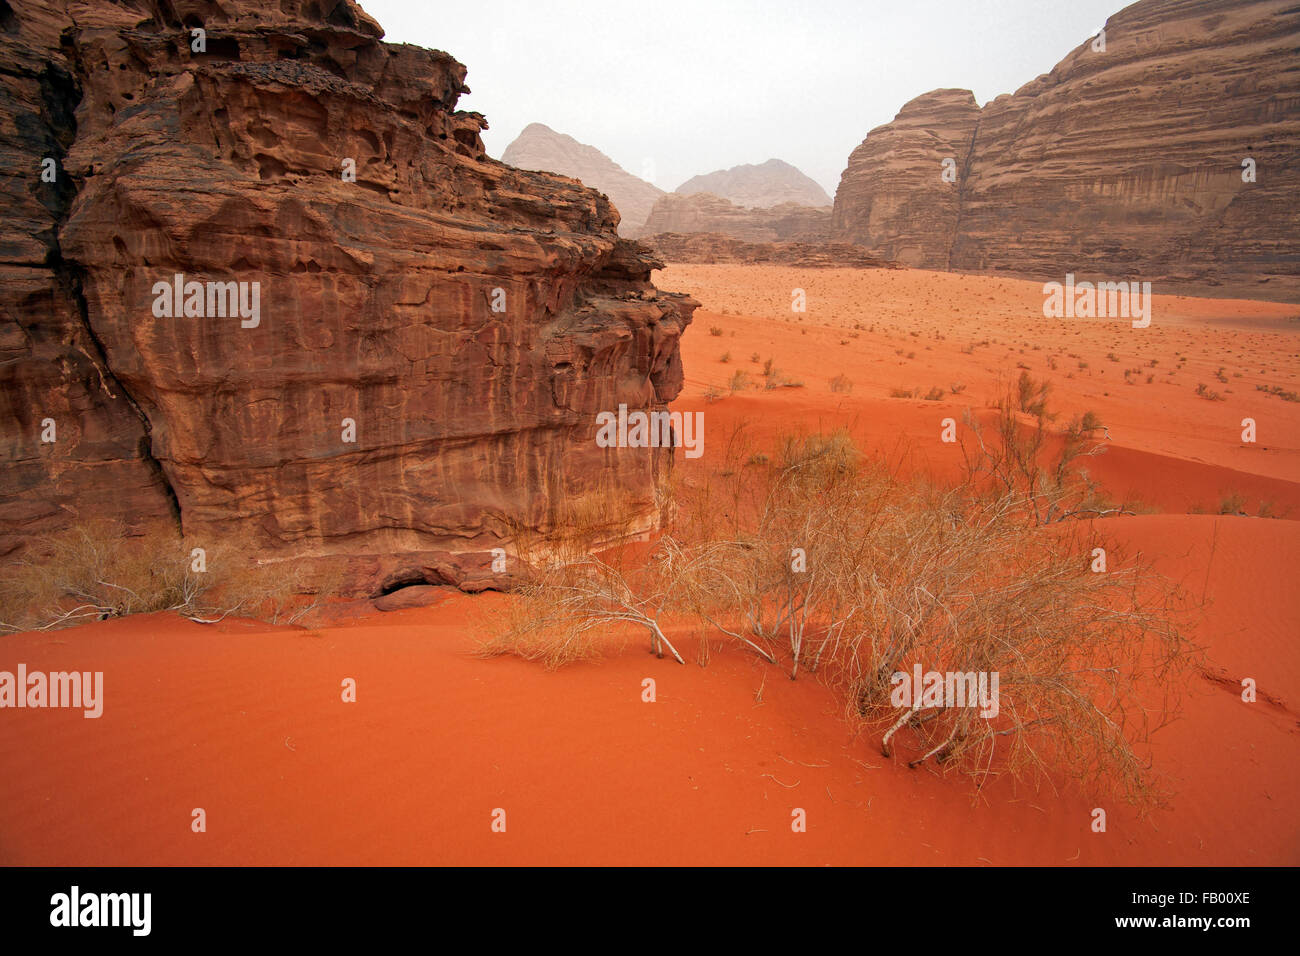 Eroded sandstone rock formation in the Wadi Rum desert / The Valley of the Moon in southern Jordan - Stock Image